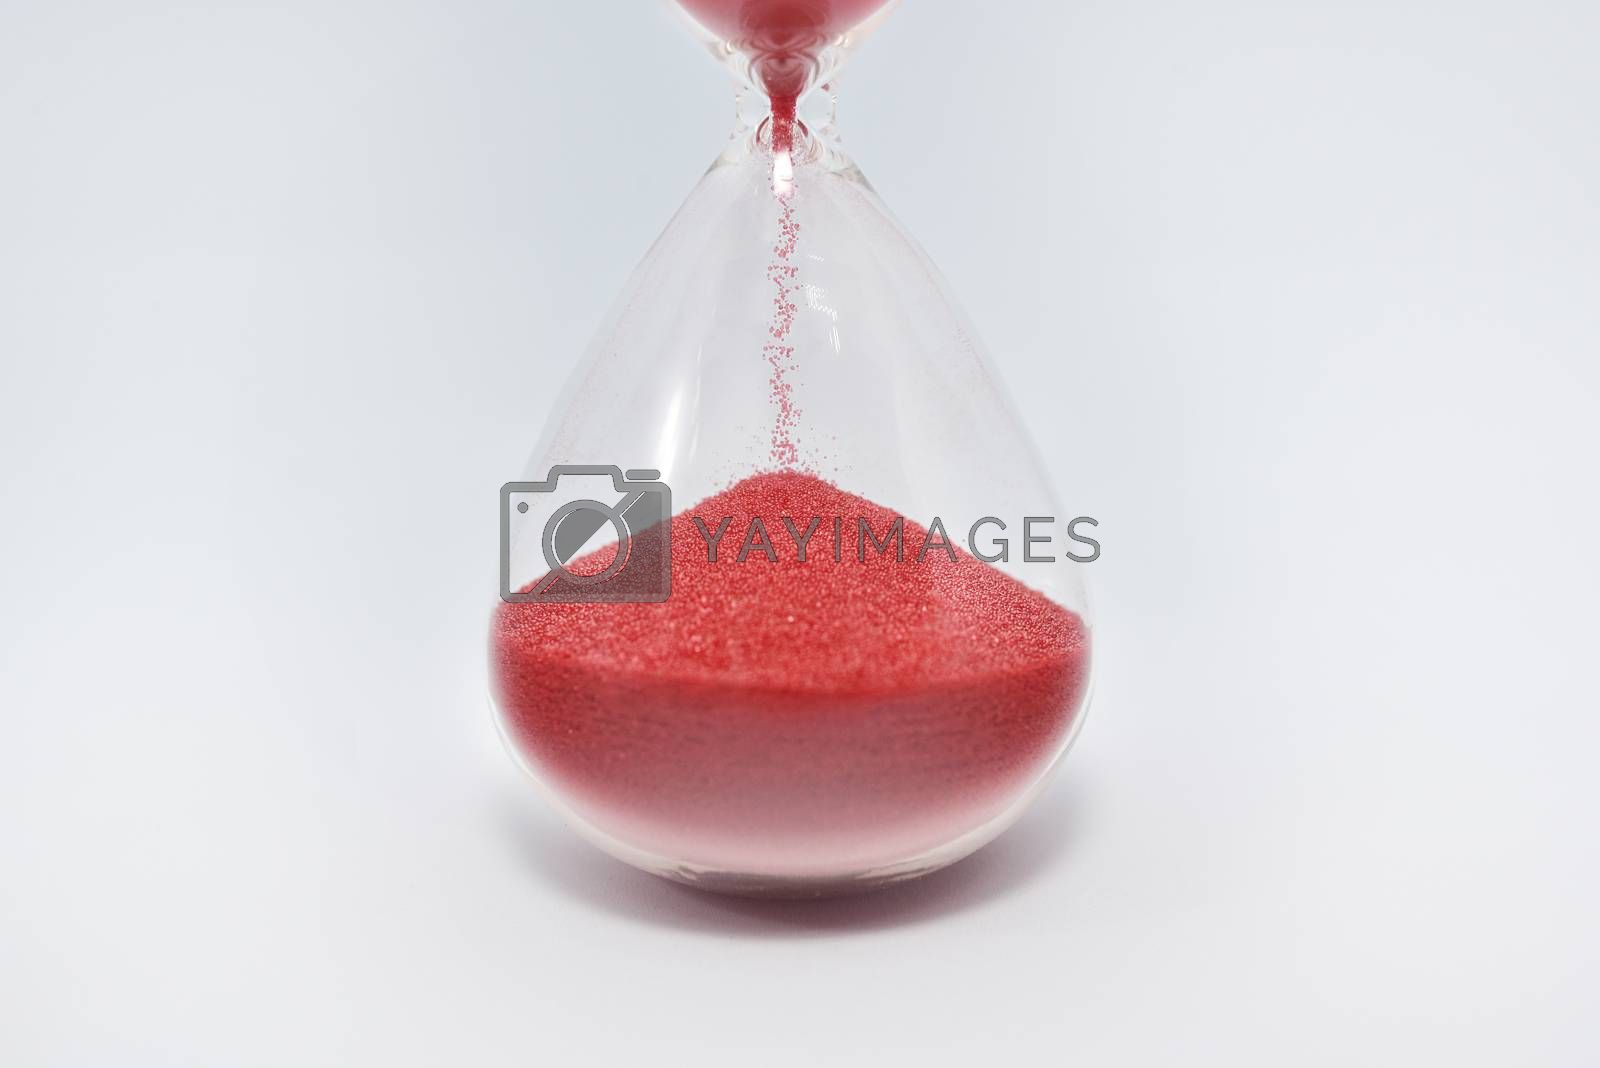 Hourglass sandglass clock isolated on white background. close up view. close up by Nickstock